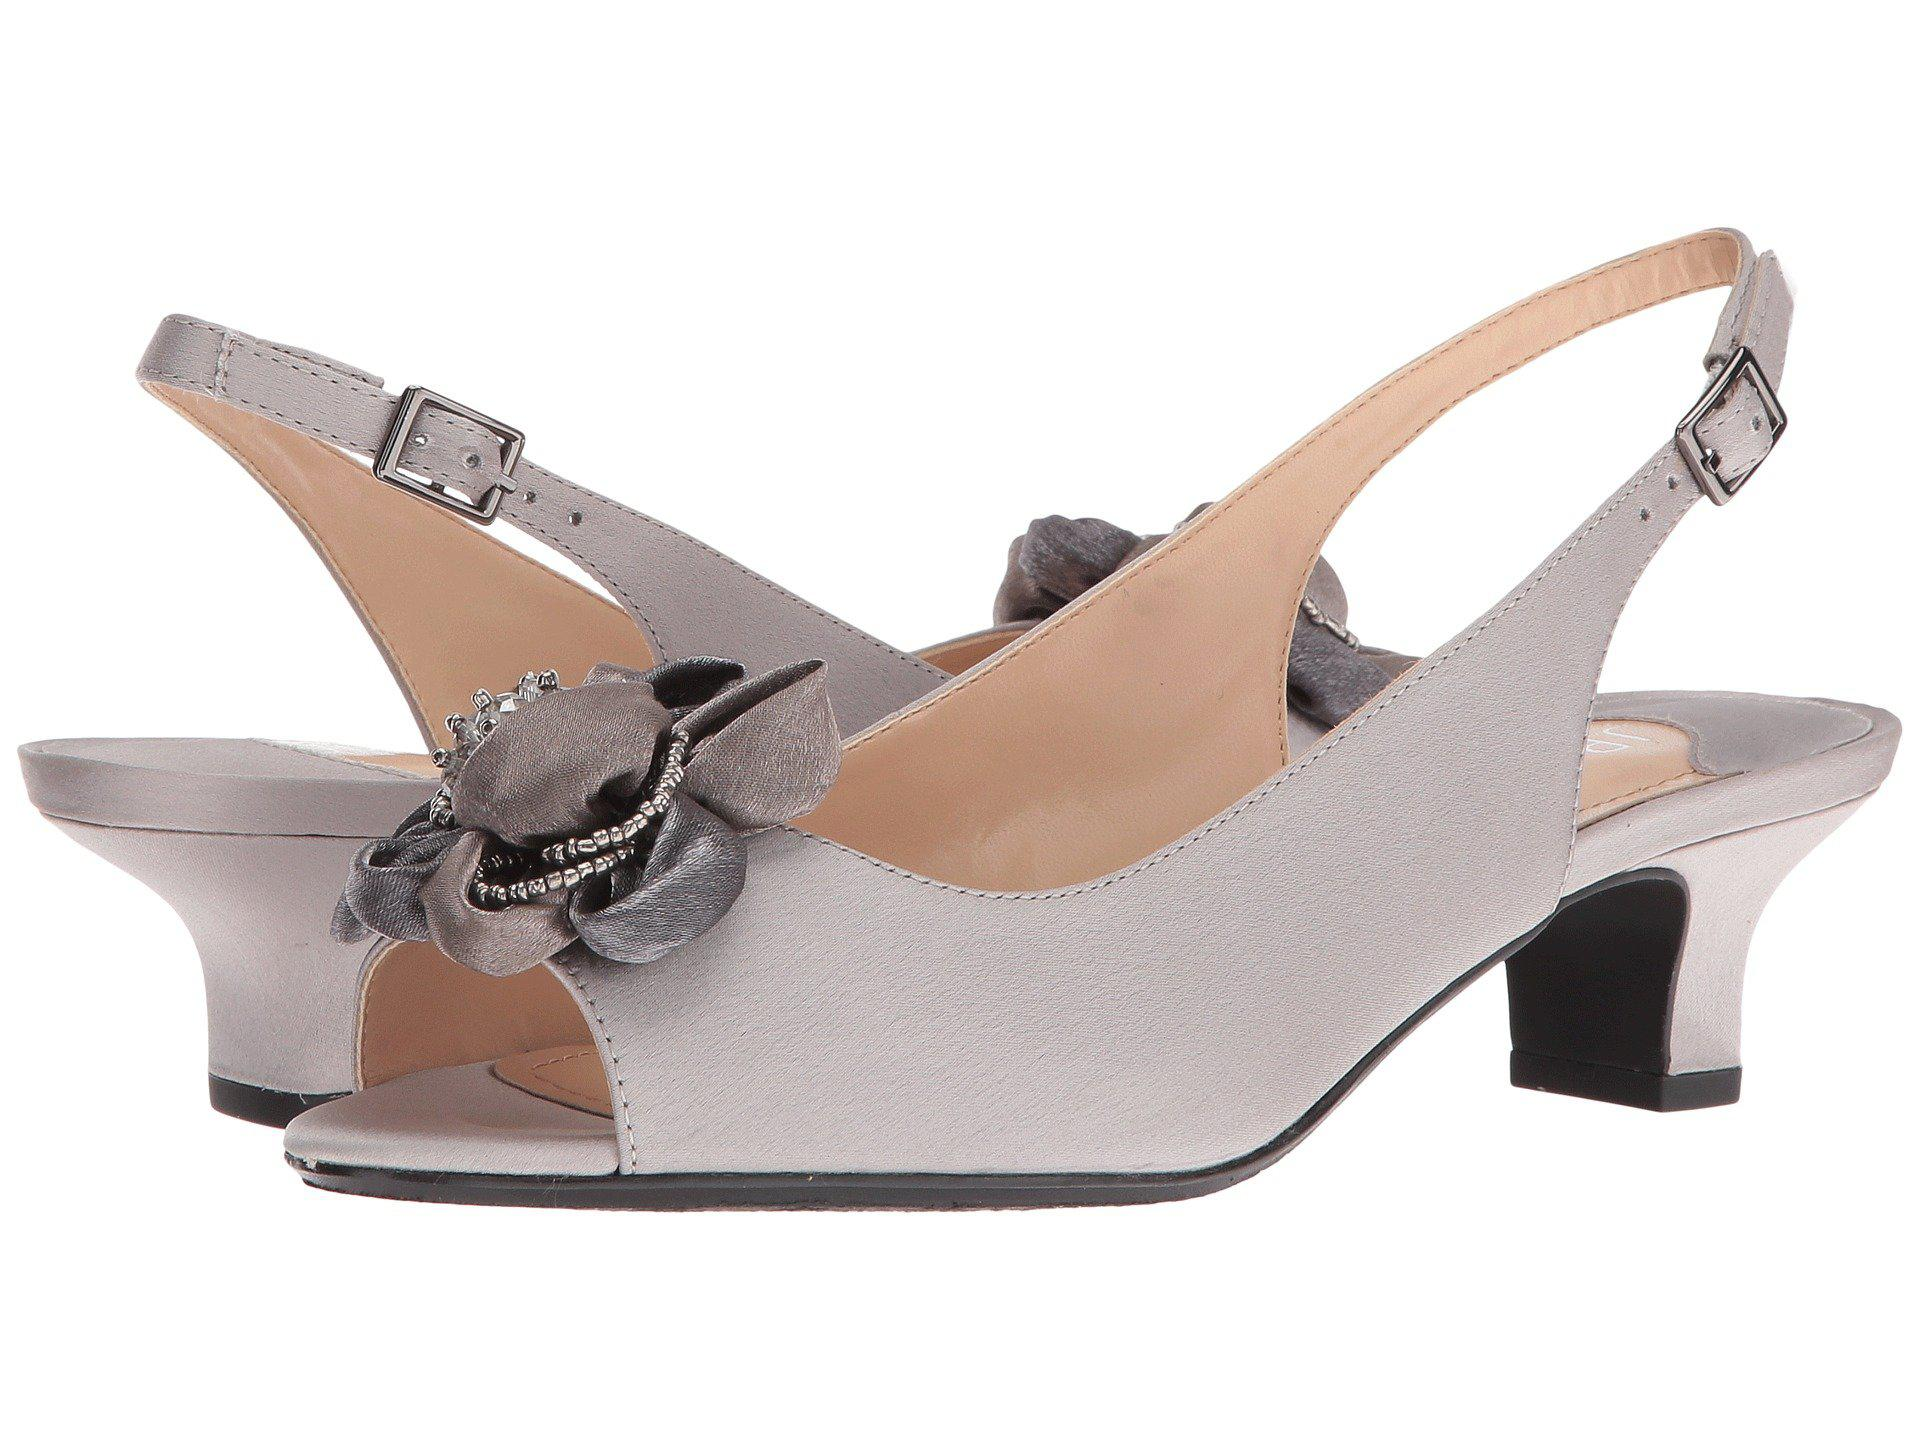 71b1ba2f39c Lyst - J. Reneé Leonelle (black) Women s Shoes in Gray